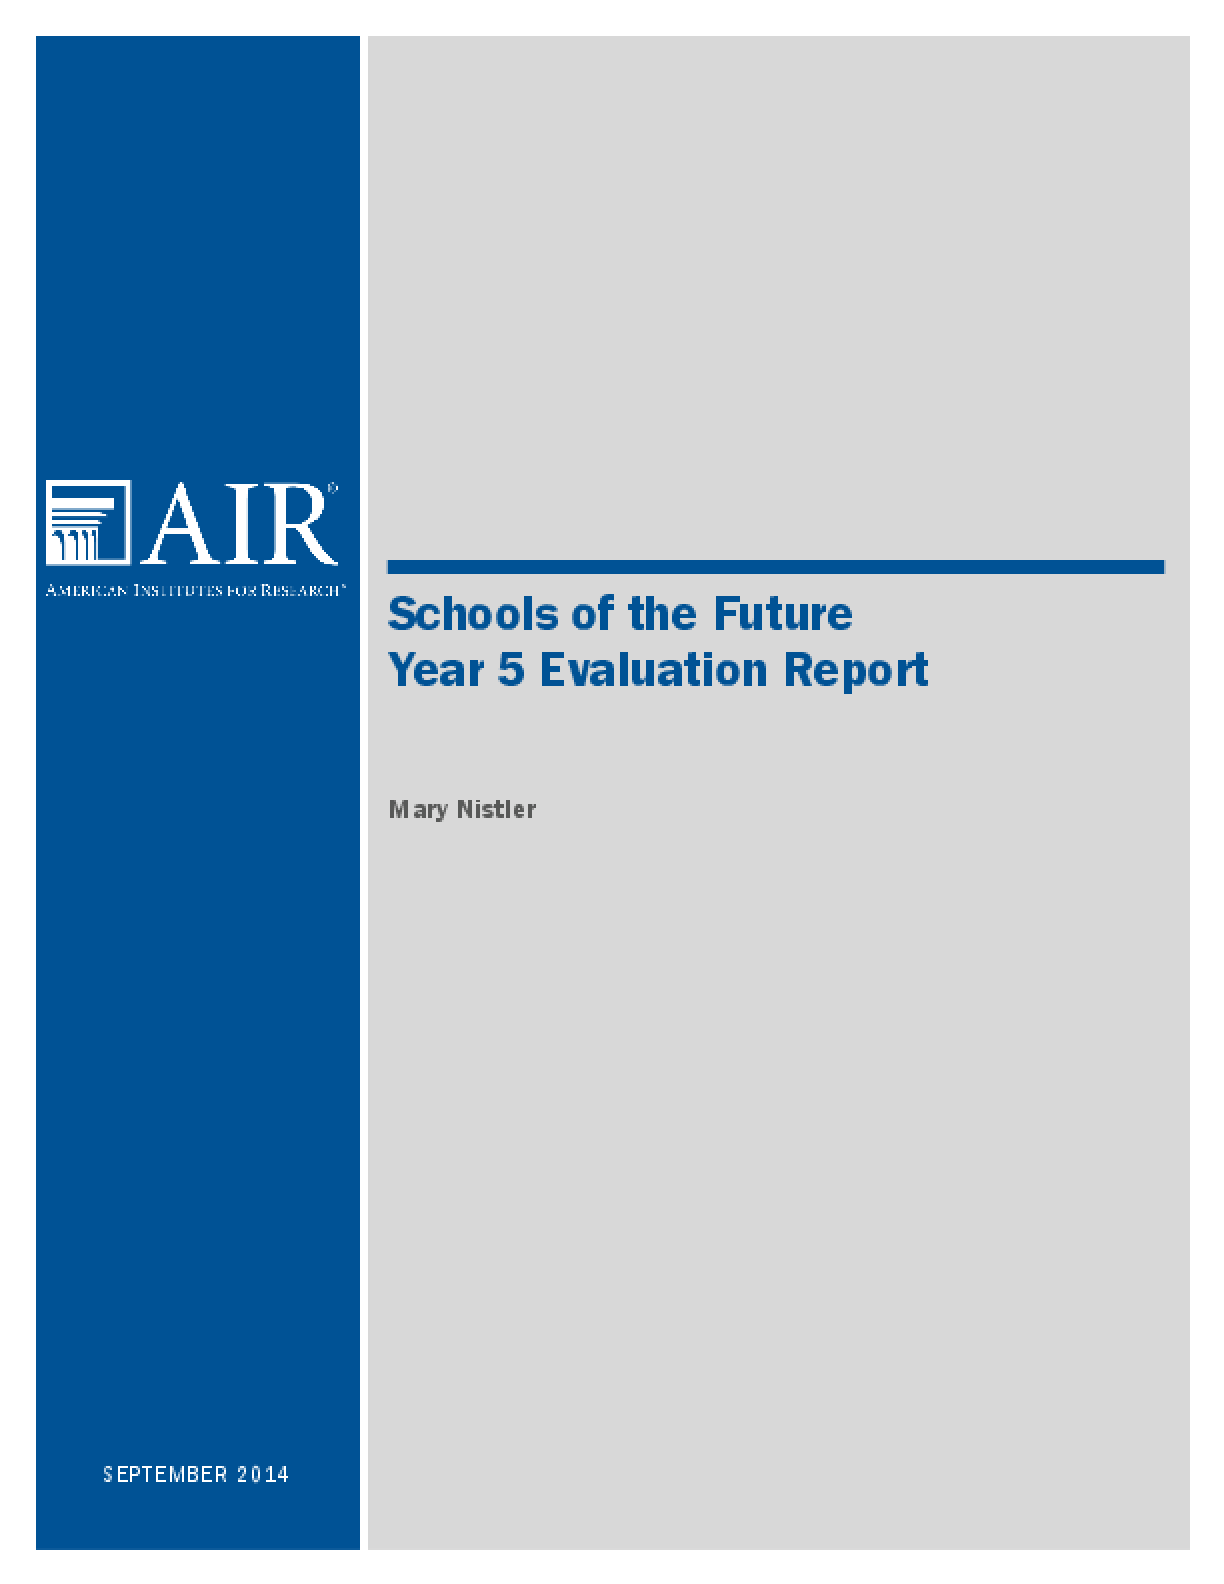 Schools of the Future Year 5 Evaluation Report